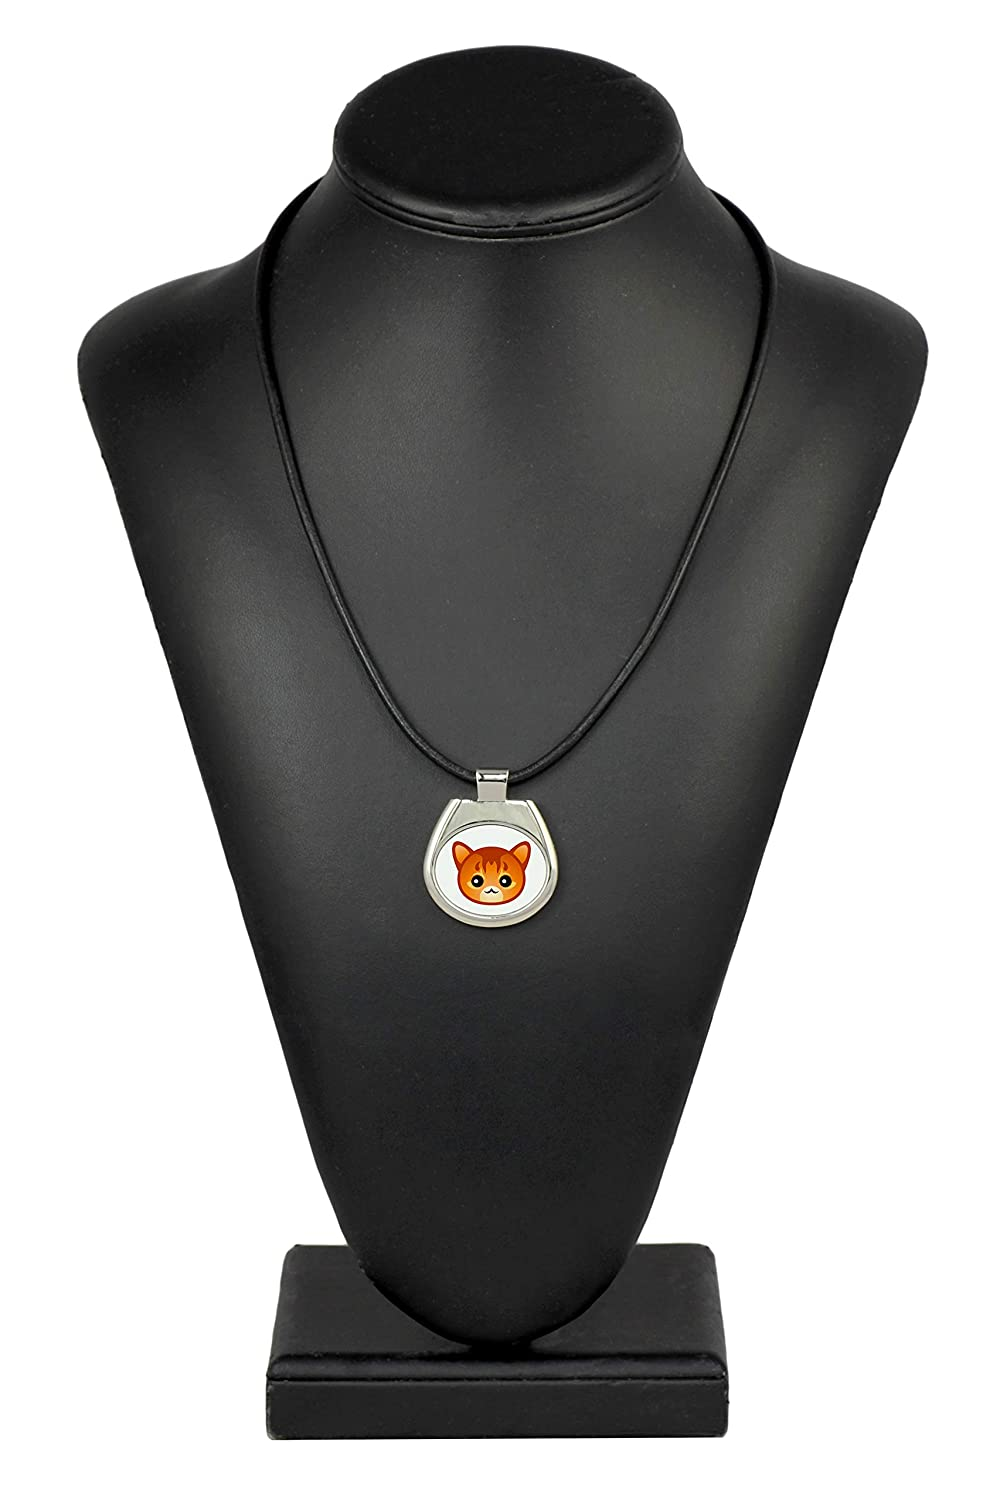 a with a Cute ArtDog cat Somali Necklace with a cat